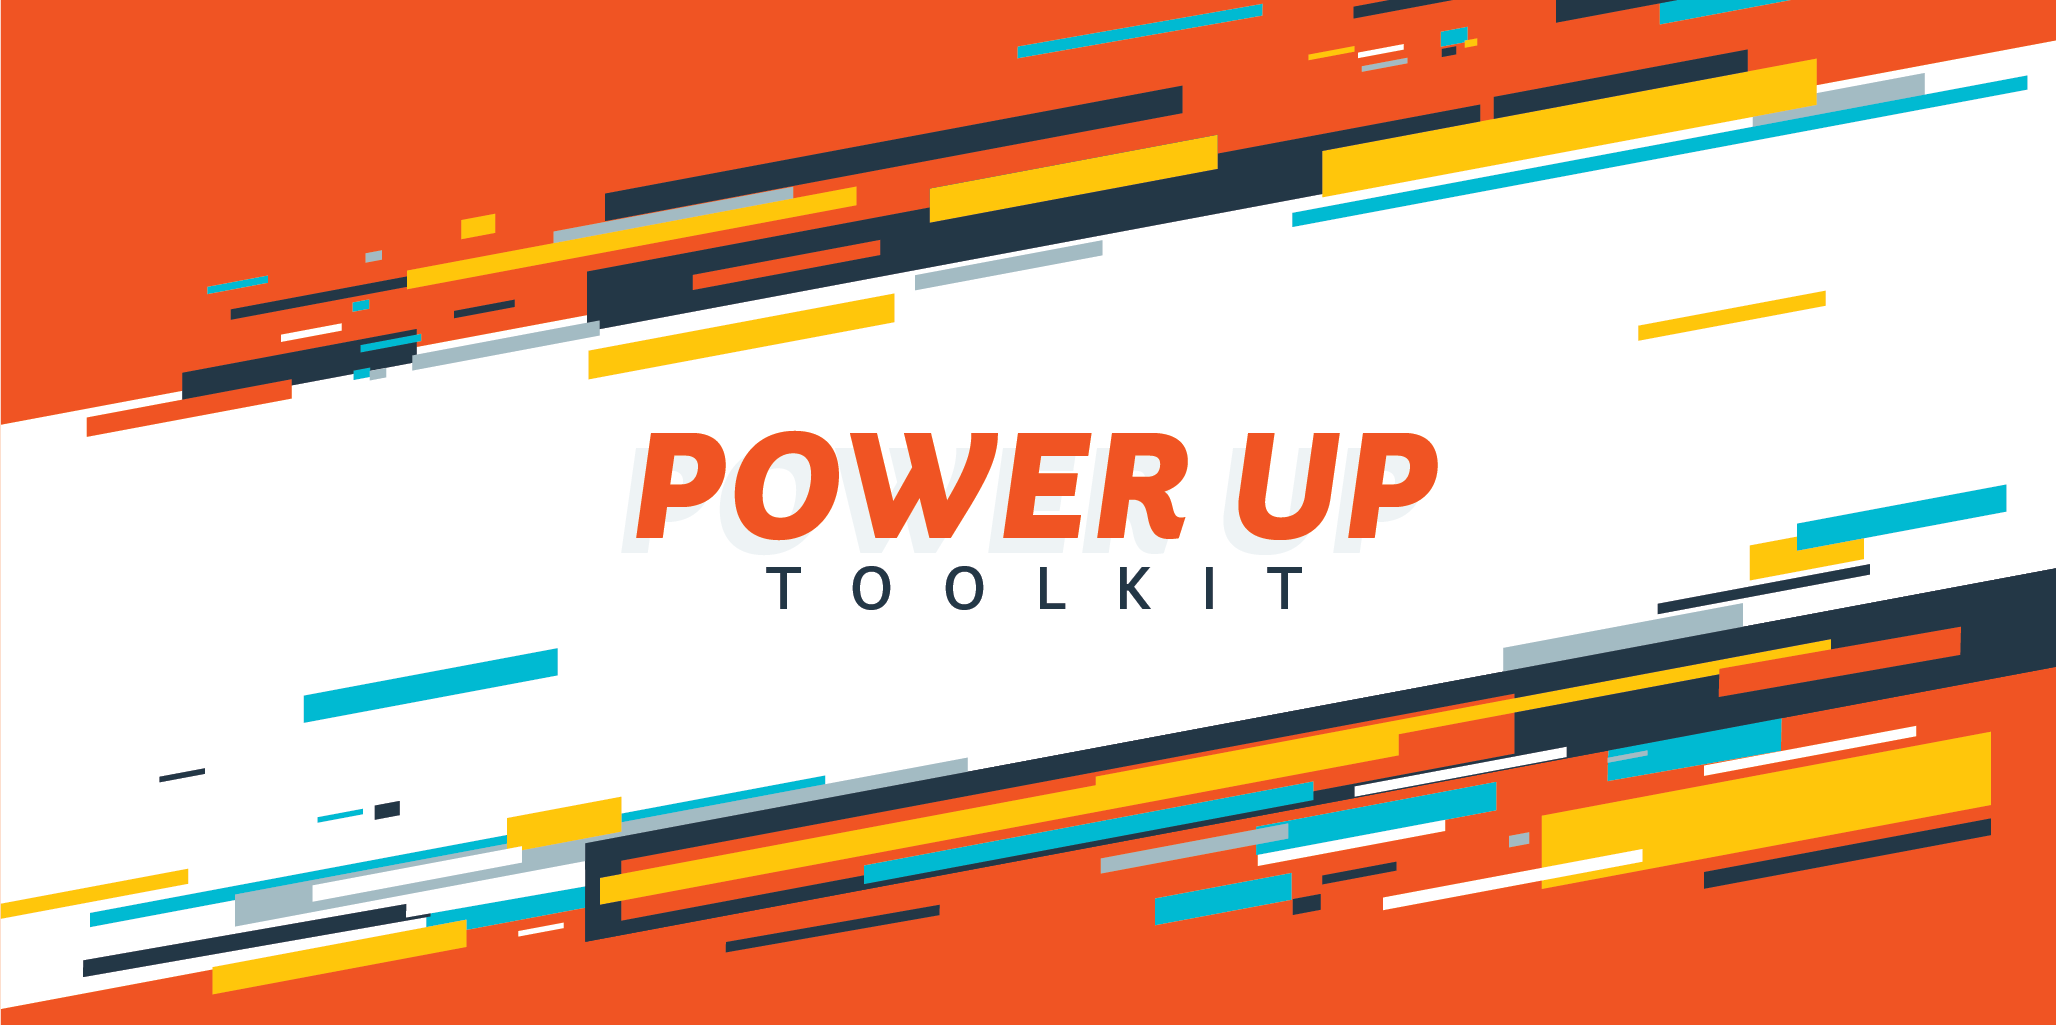 MADE_Toolkit_Email_ToolkitTitles_Power Up